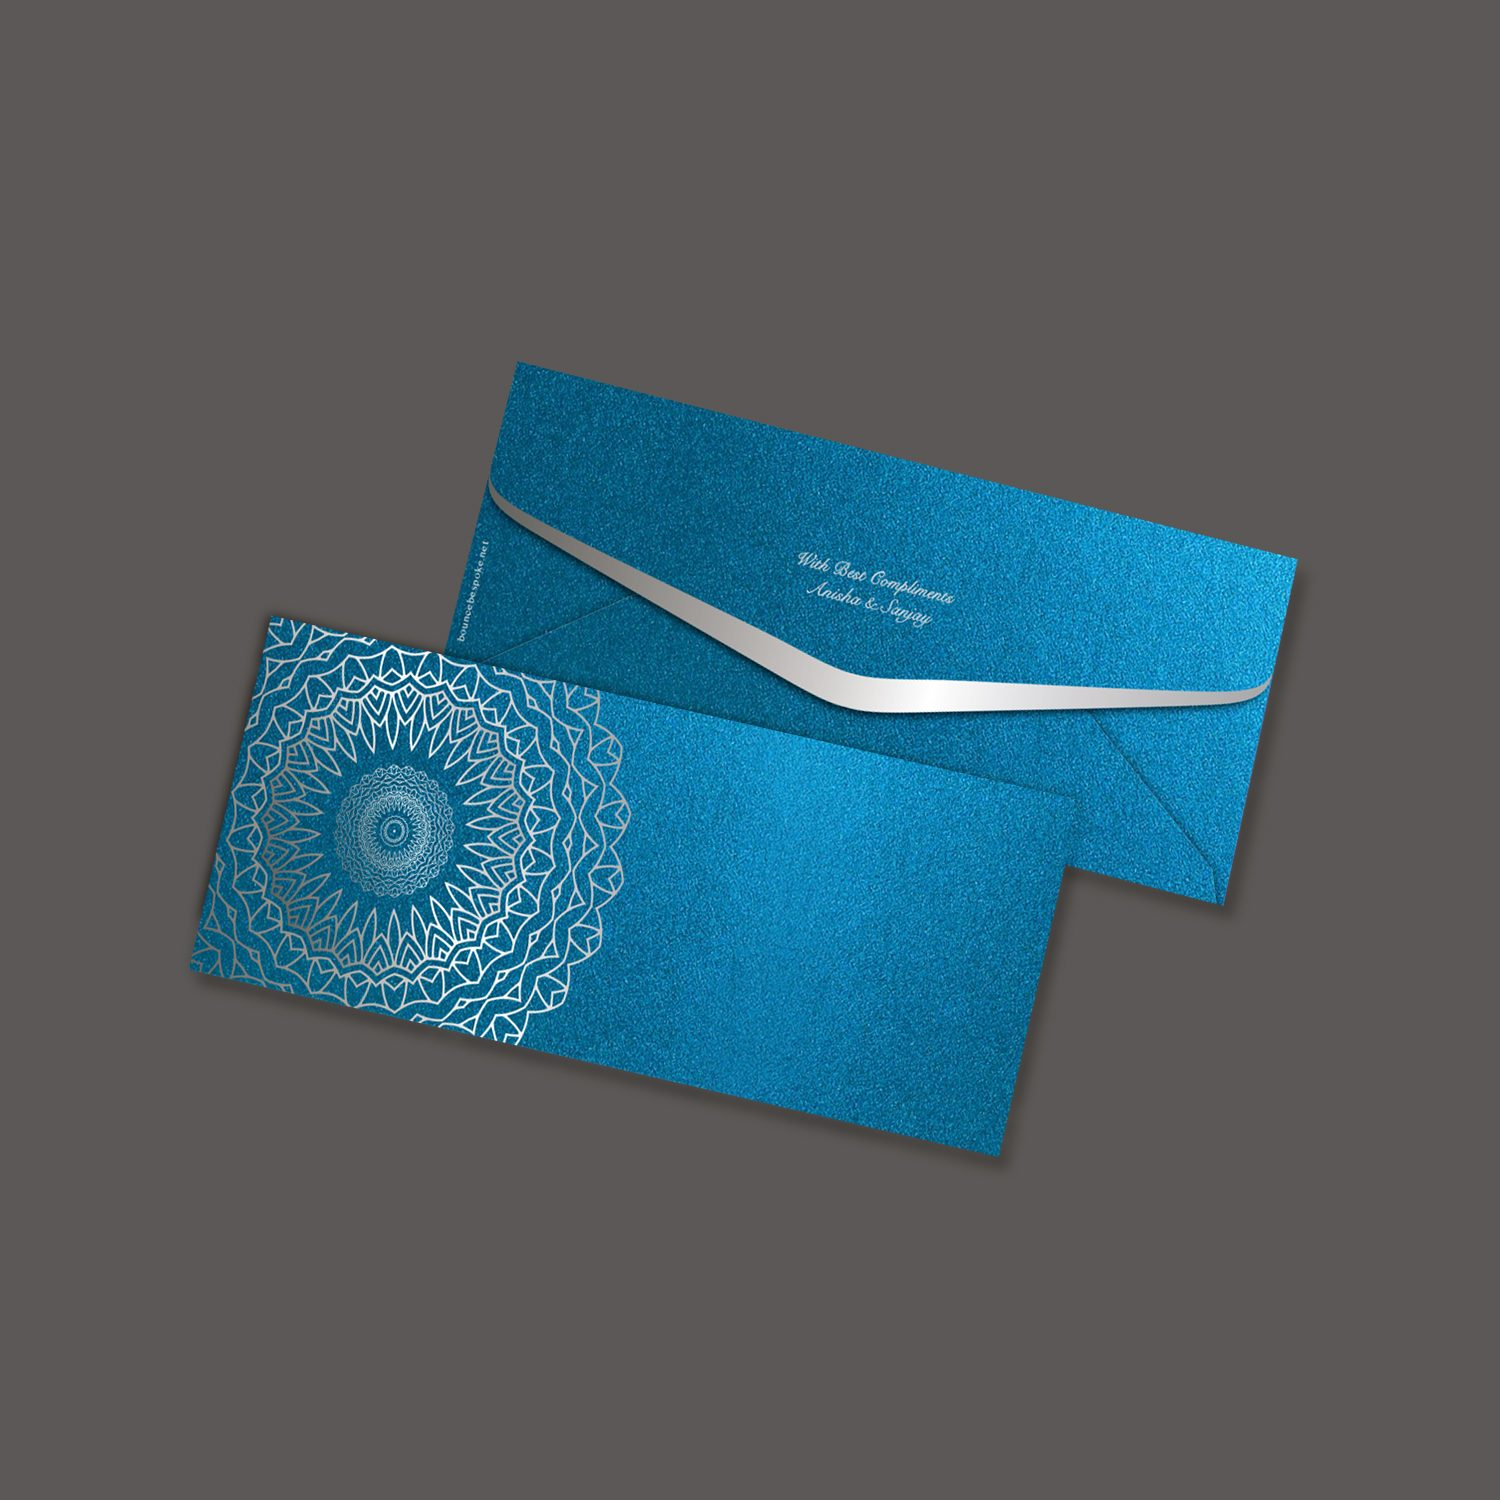 Floral Ripple Peacock Blue Gift Envelope